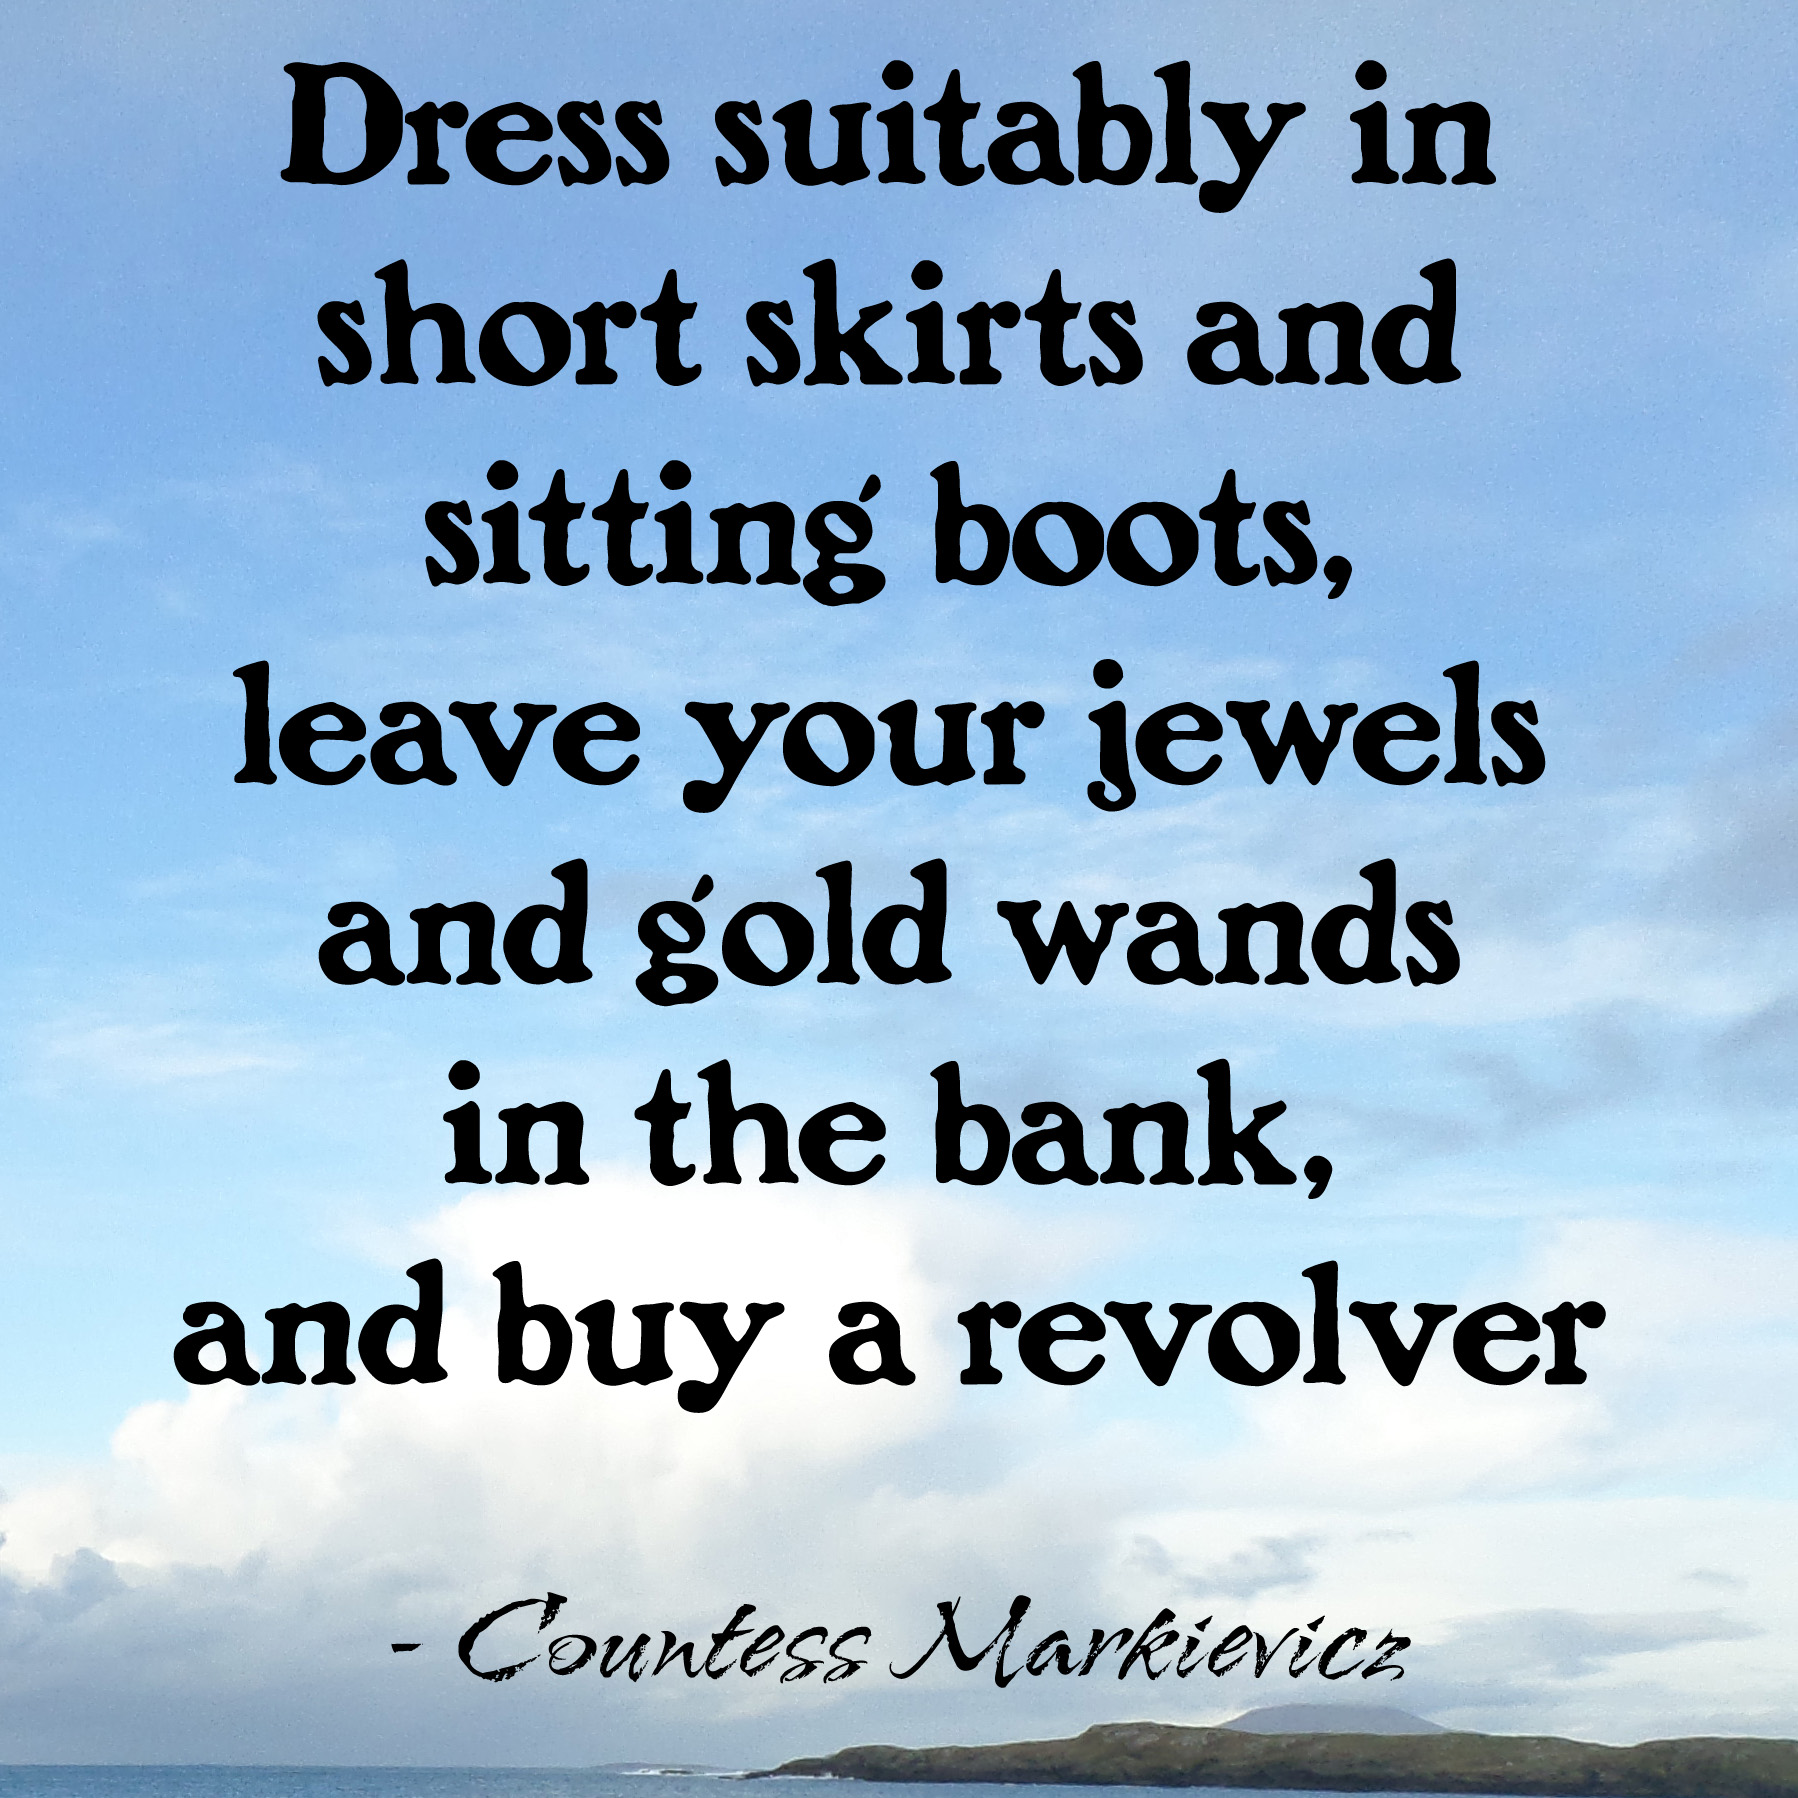 Dress suitably in short skirts and sitting boots, leave your jewels and gold wands in the bank, and buy a revolver